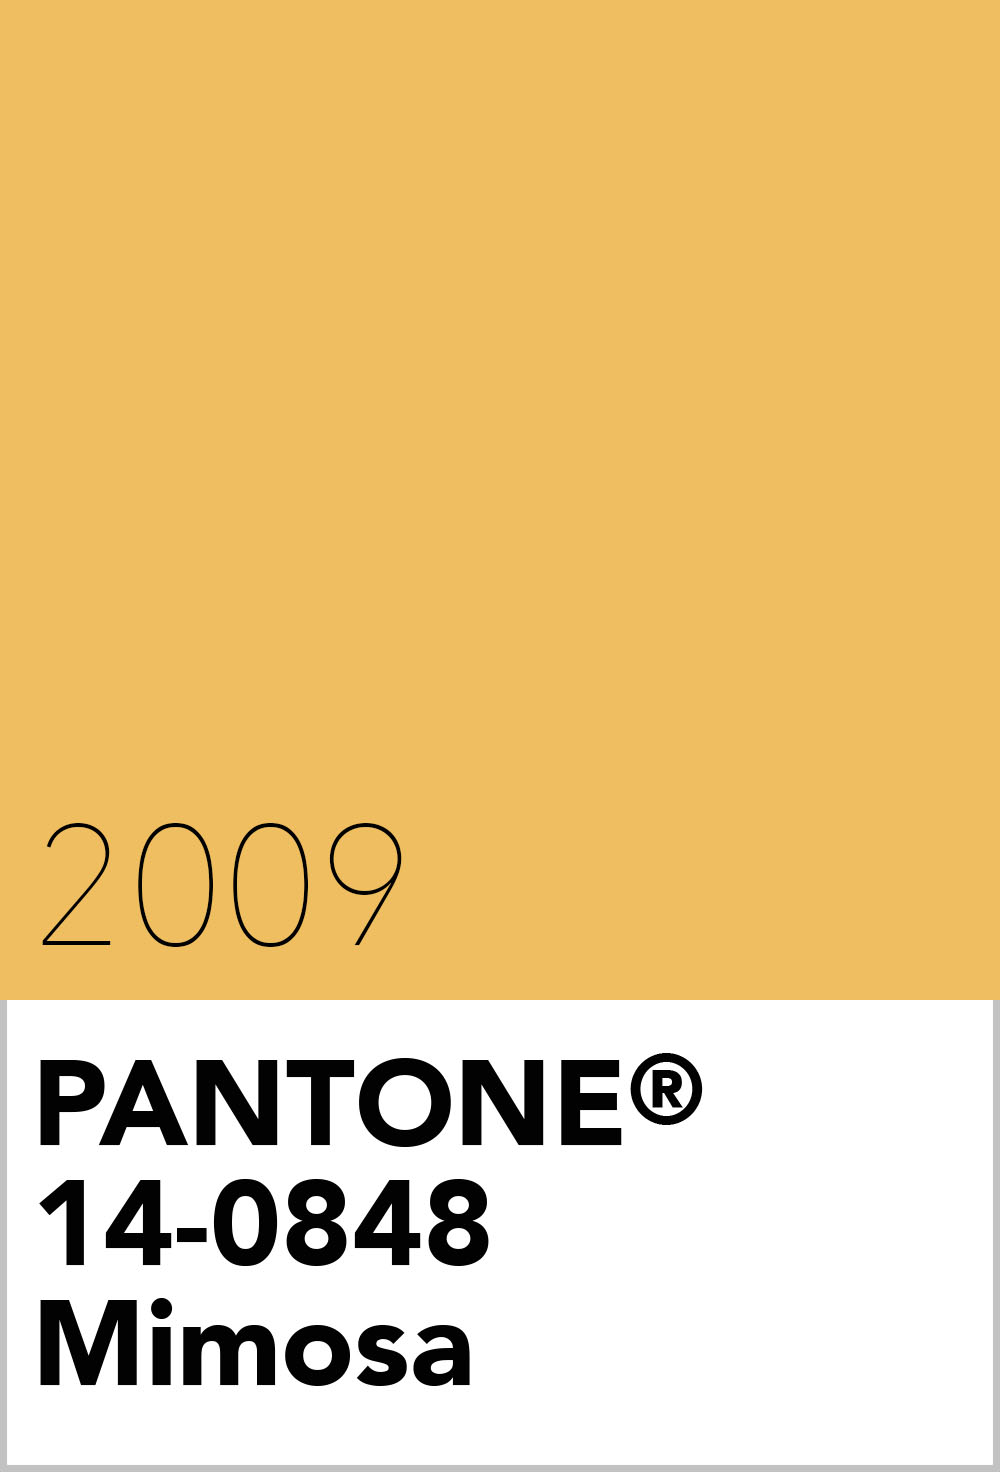 pantone colour of the year 2009